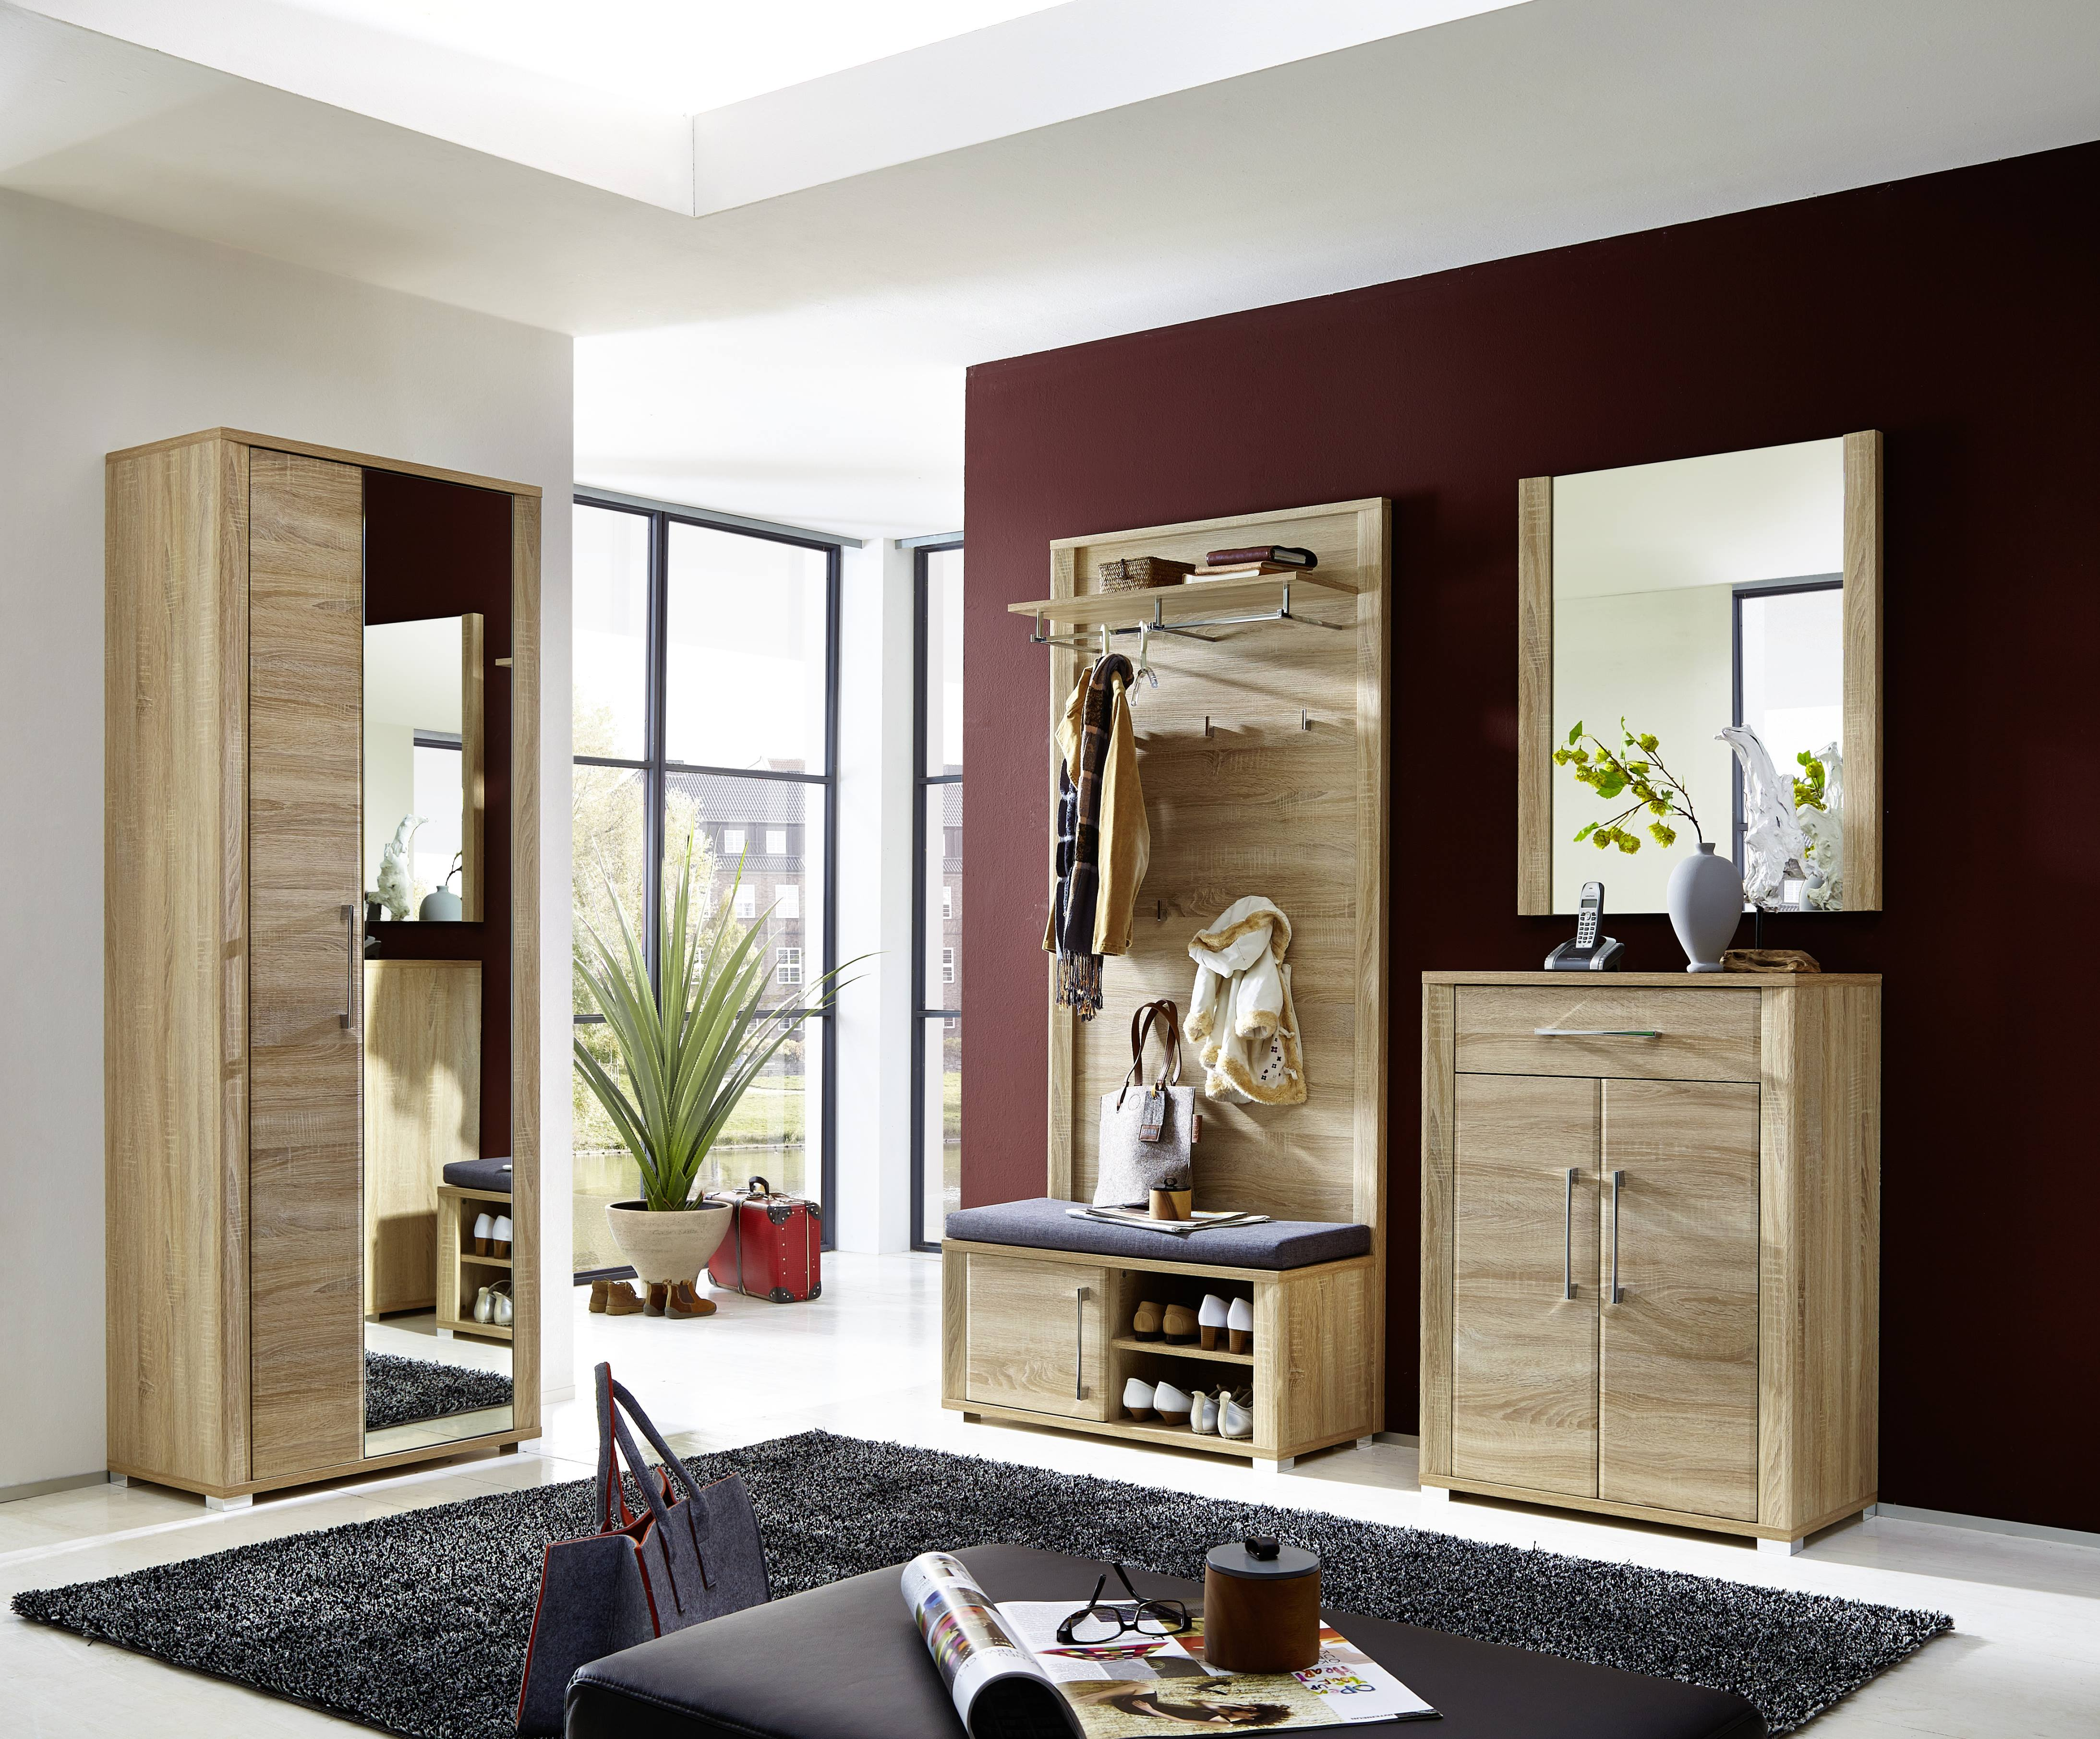 garderobe go 5 tlg garderobenschrank paneel bank schuhschrank spiegel eiche ebay. Black Bedroom Furniture Sets. Home Design Ideas